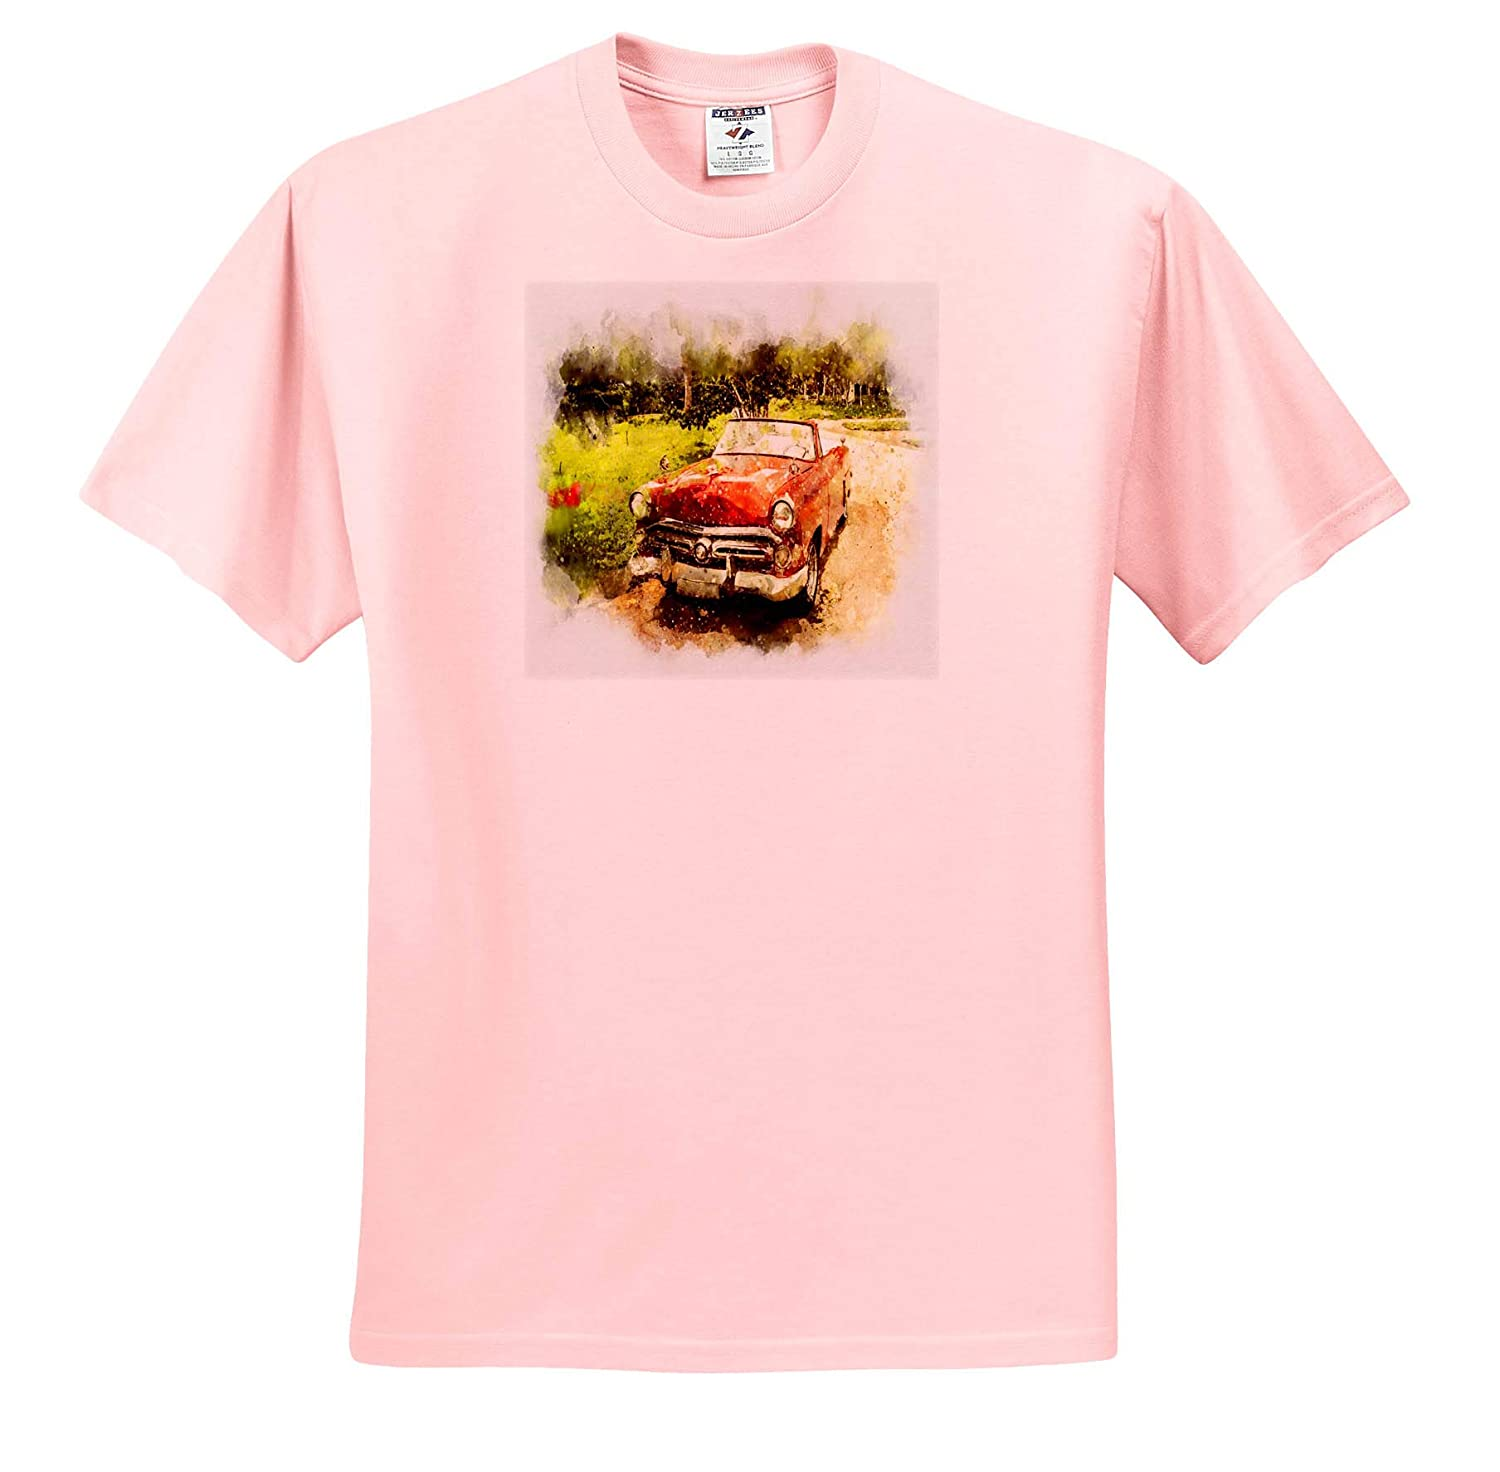 Watercolor Art Image of Painting of Retro Red Convertible in Countryside 3dRose Lens Art by Florene T-Shirts